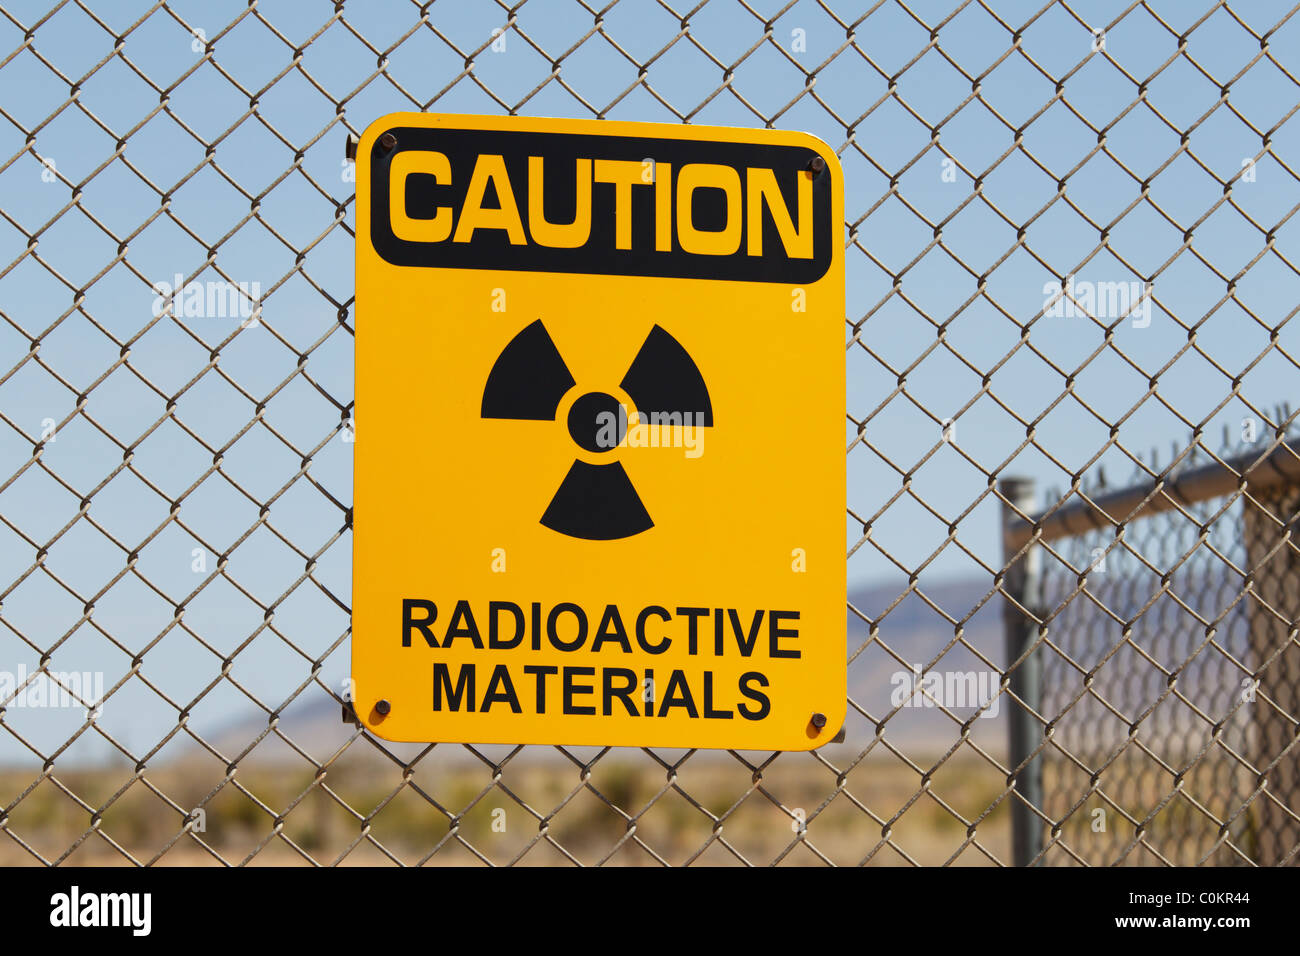 A Caution Radioactive Materials sign on a wire fence, Trinity Site, New Mexico. - Stock Image